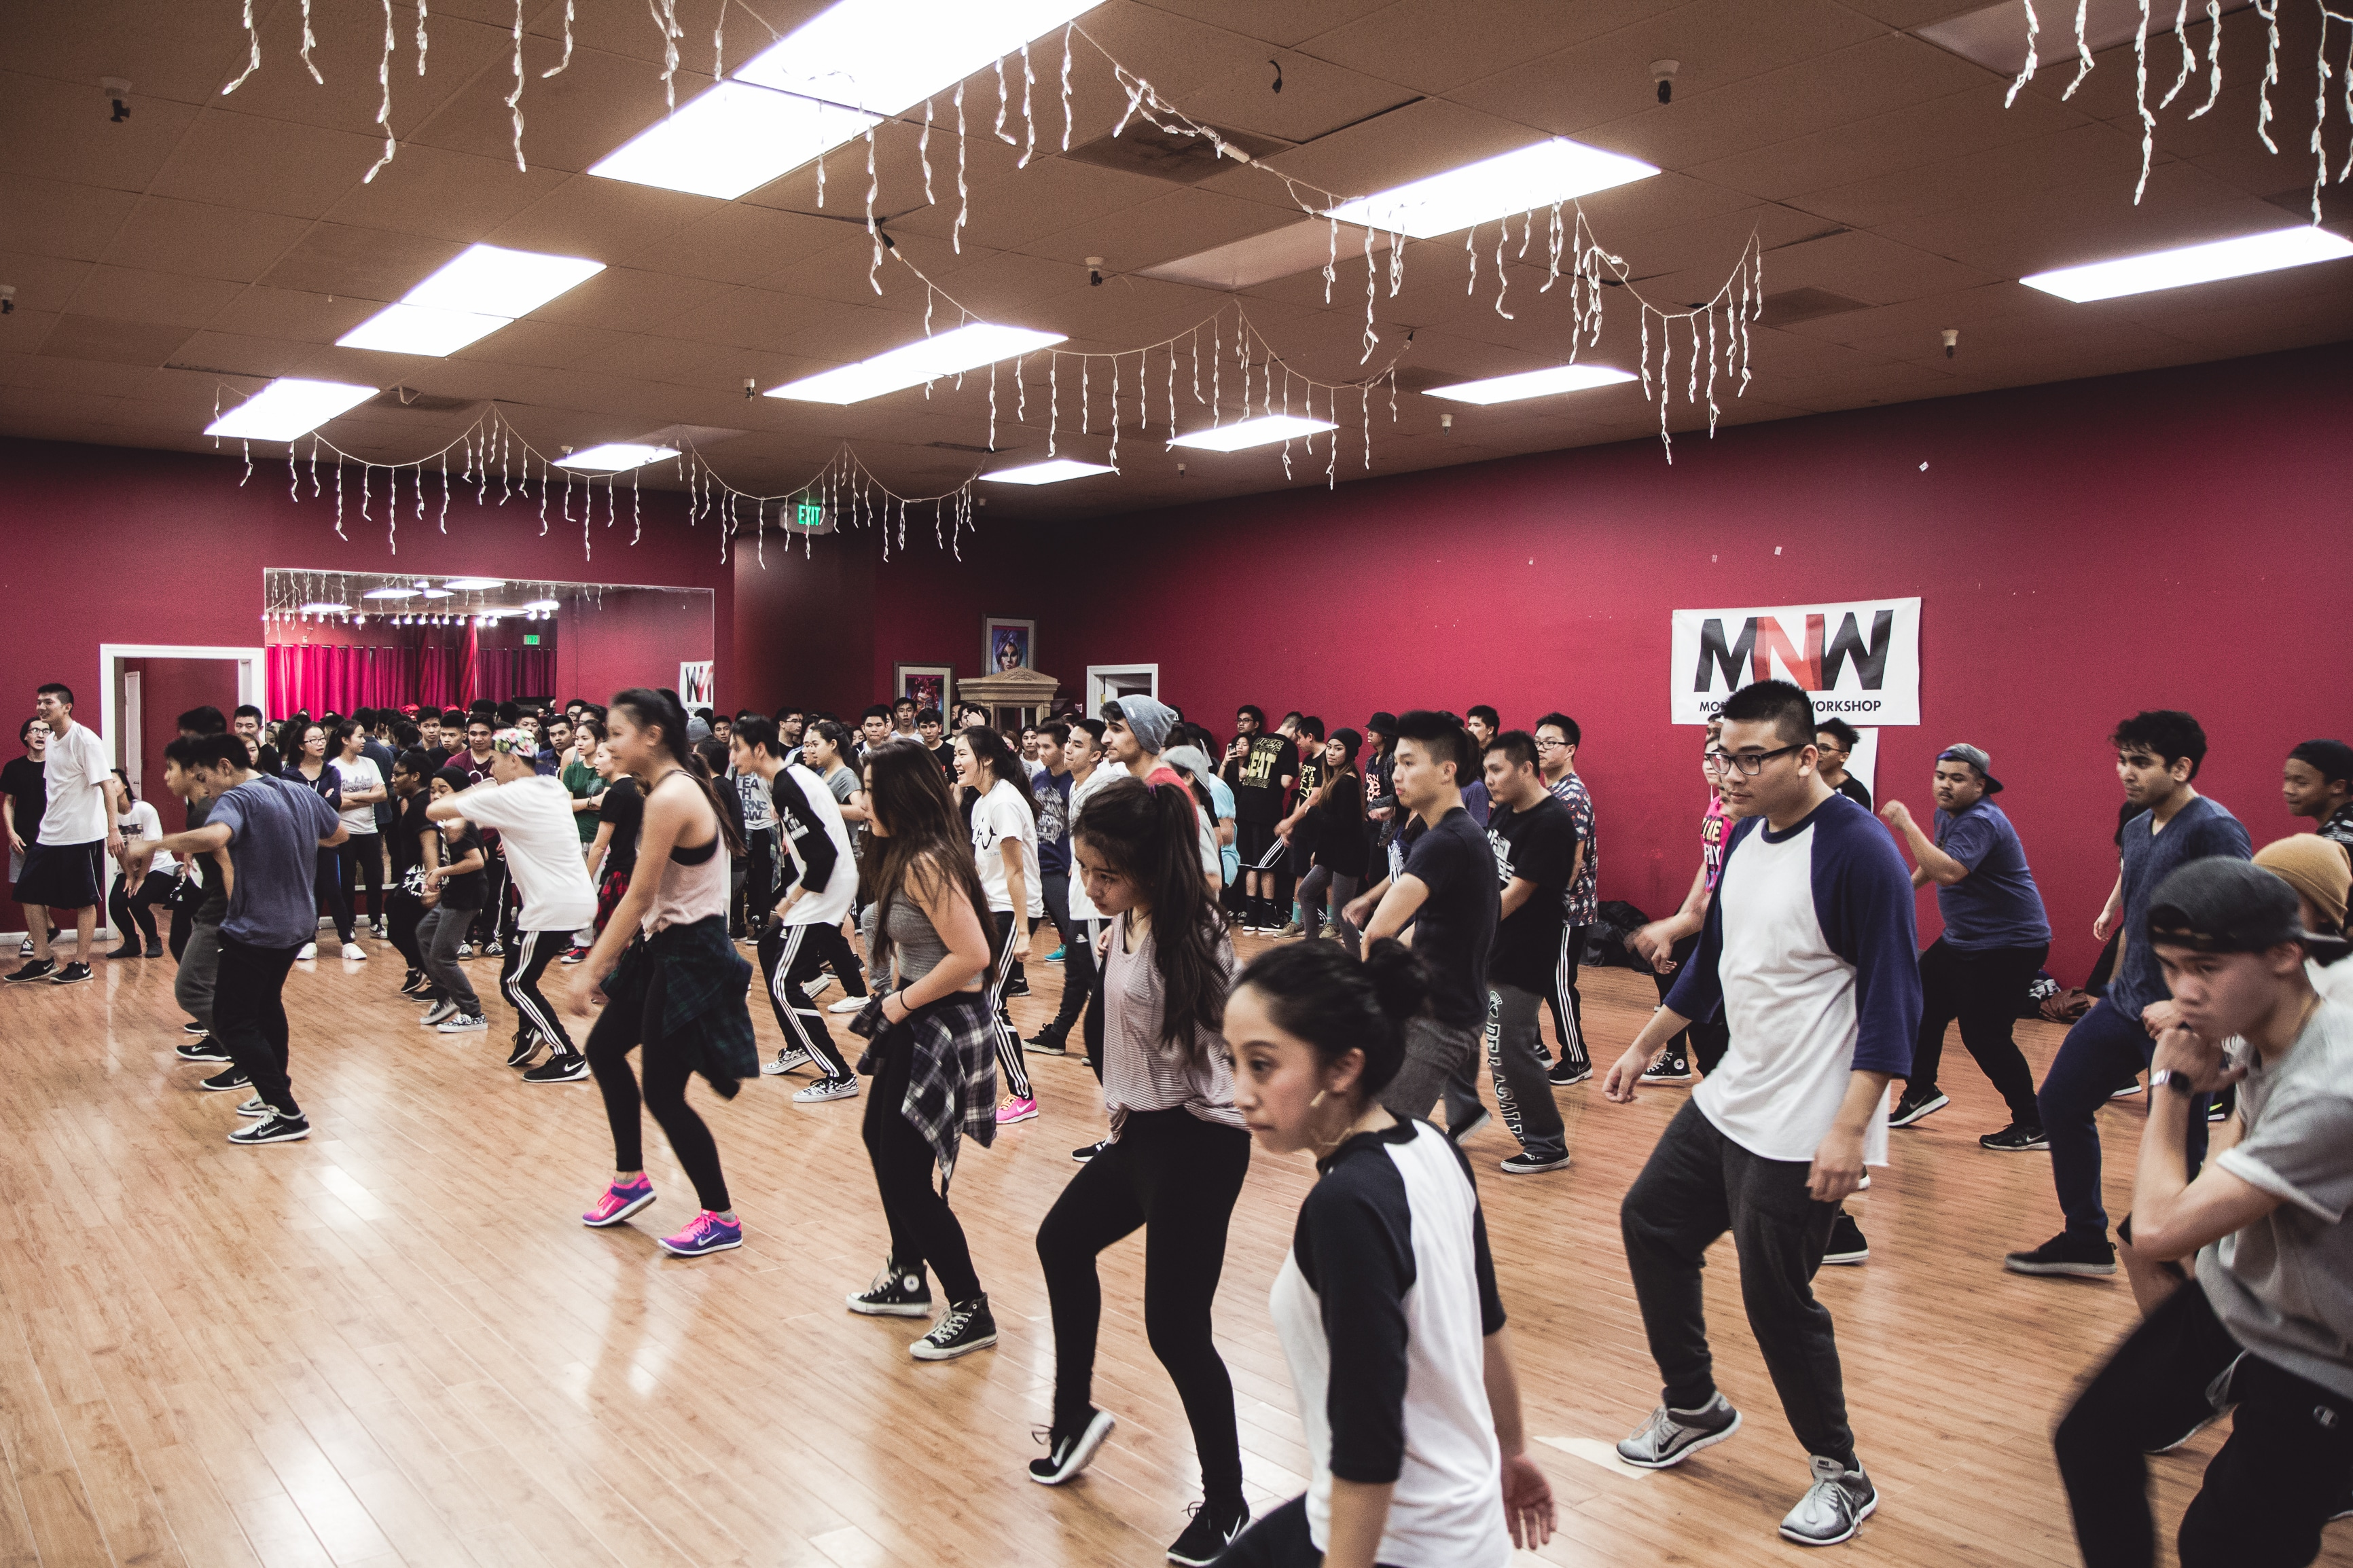 urban hip hop master class, Monday Night Workshop